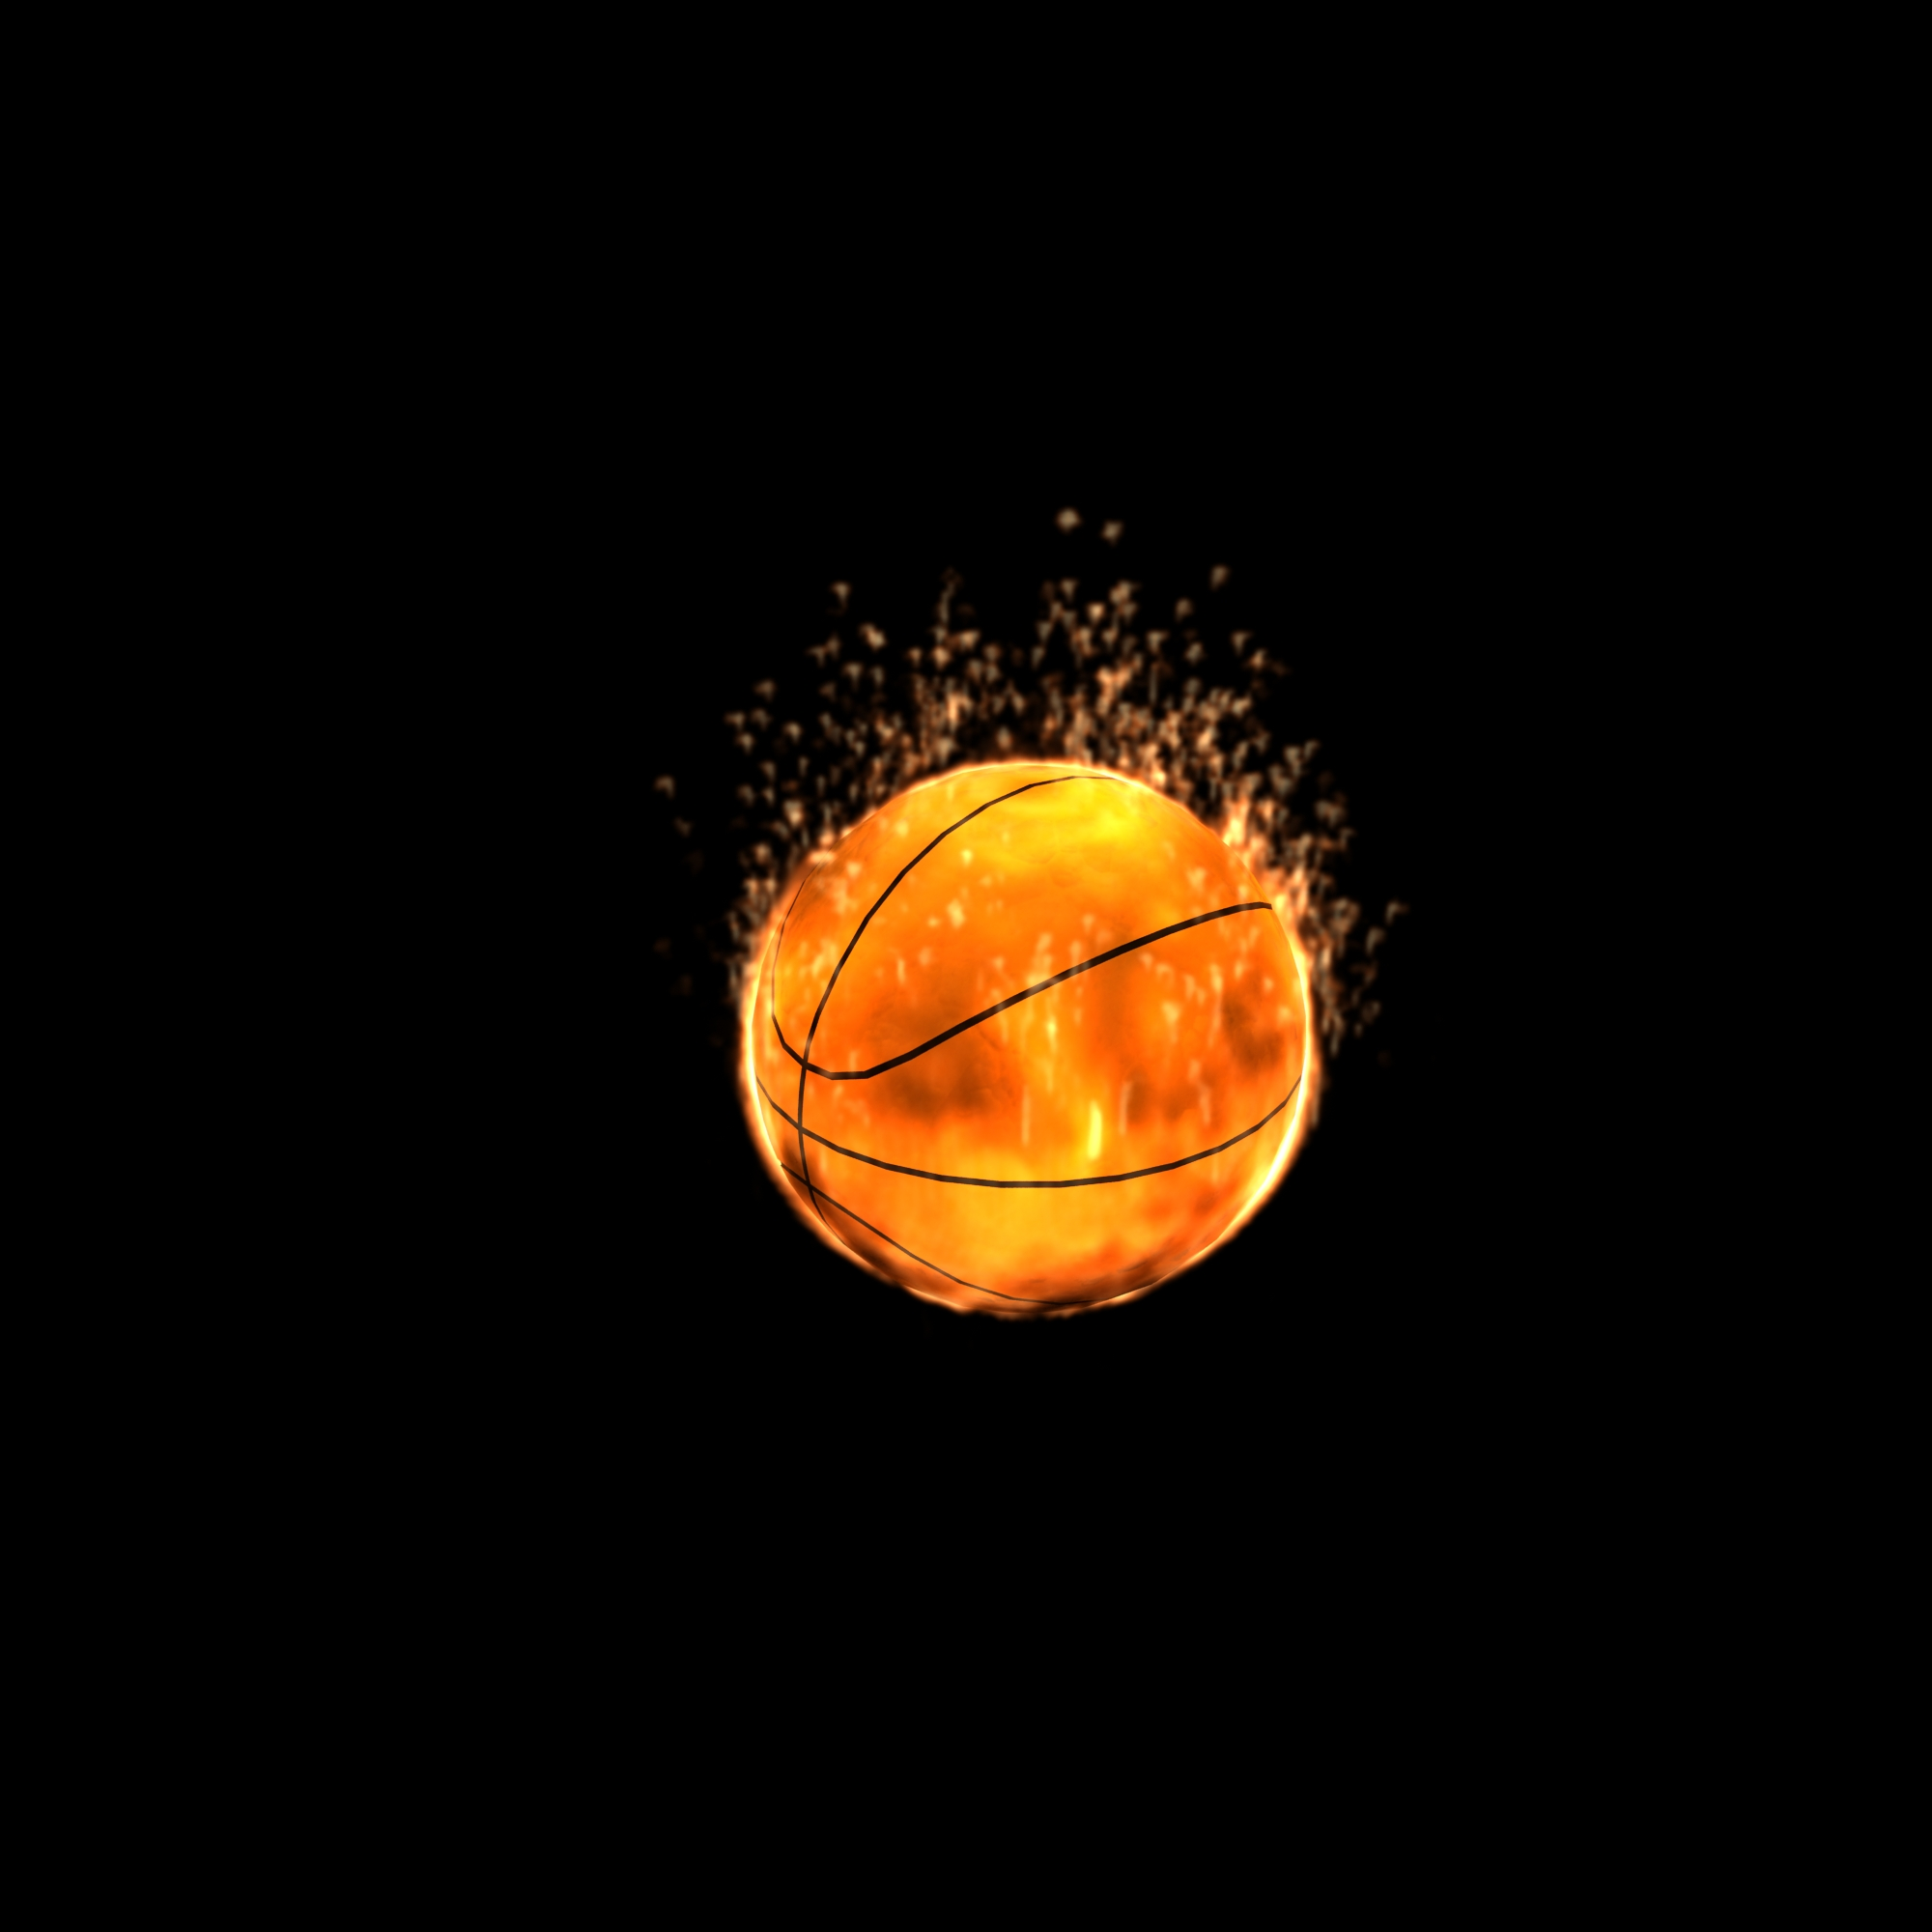 Basketball Ball On Fire Basketball on fire